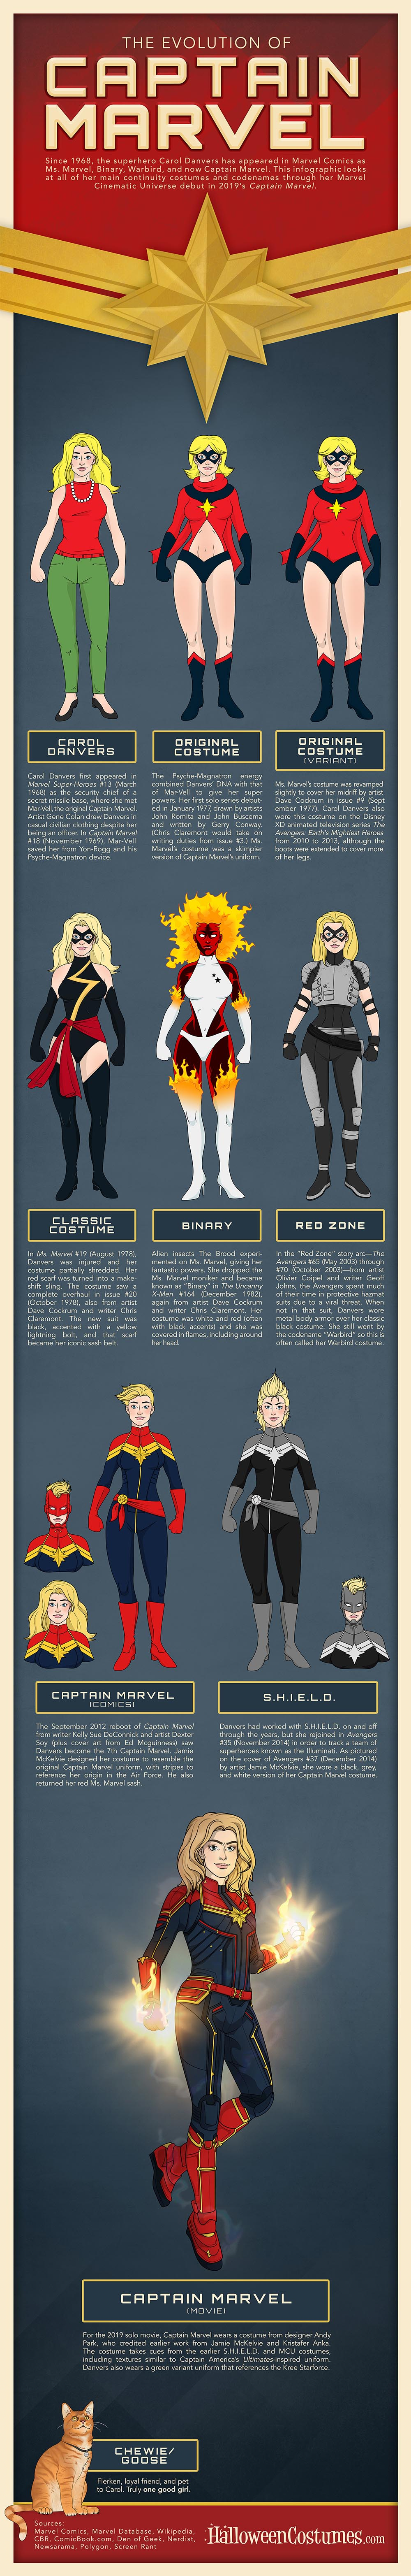 The Evolution of Captain Marvel infographic